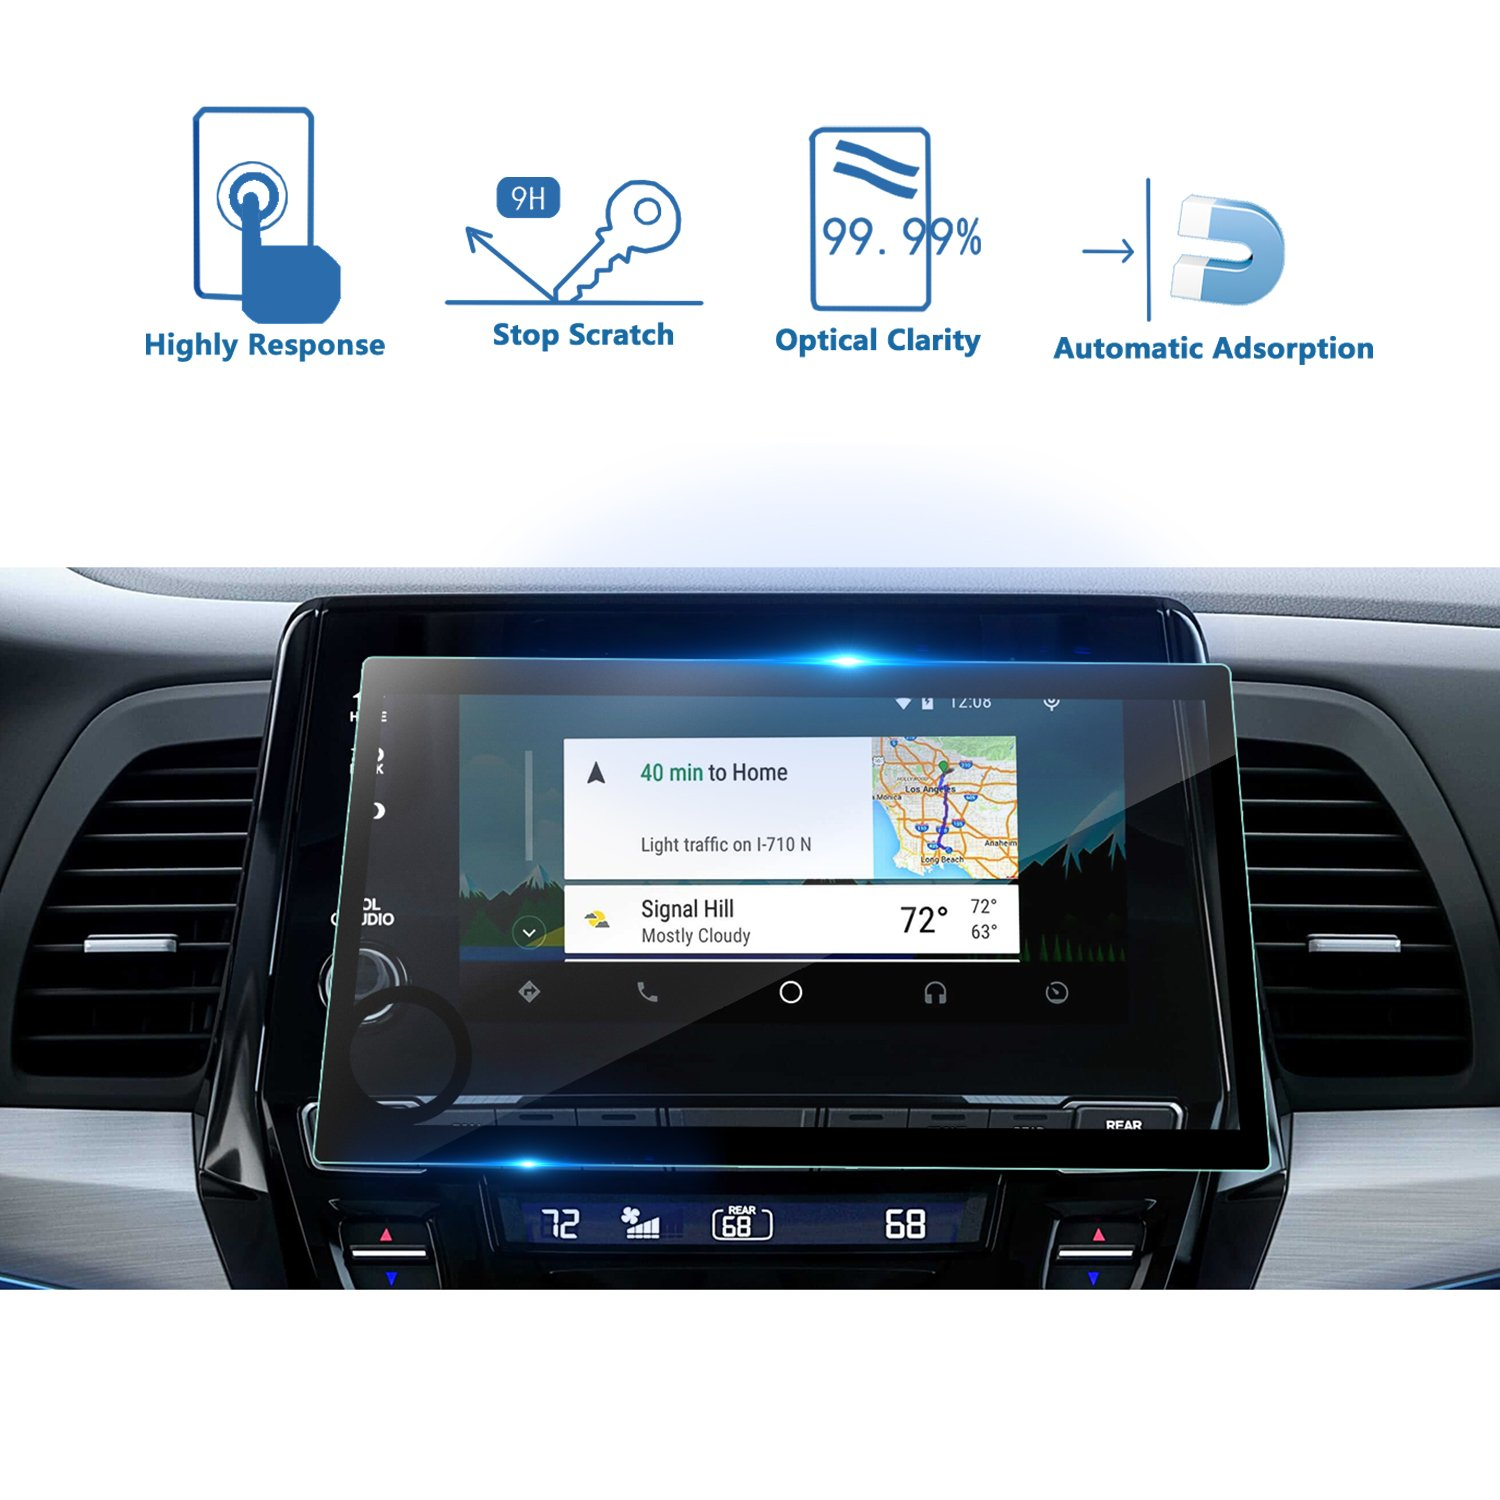 LFOTPP 2018 2019 Honda Odyssey 8 Inch Car Navigation Screen Protector, Tempered Glass Infotainment Display in-Dash Touch Protective Film Scratch-Resistant